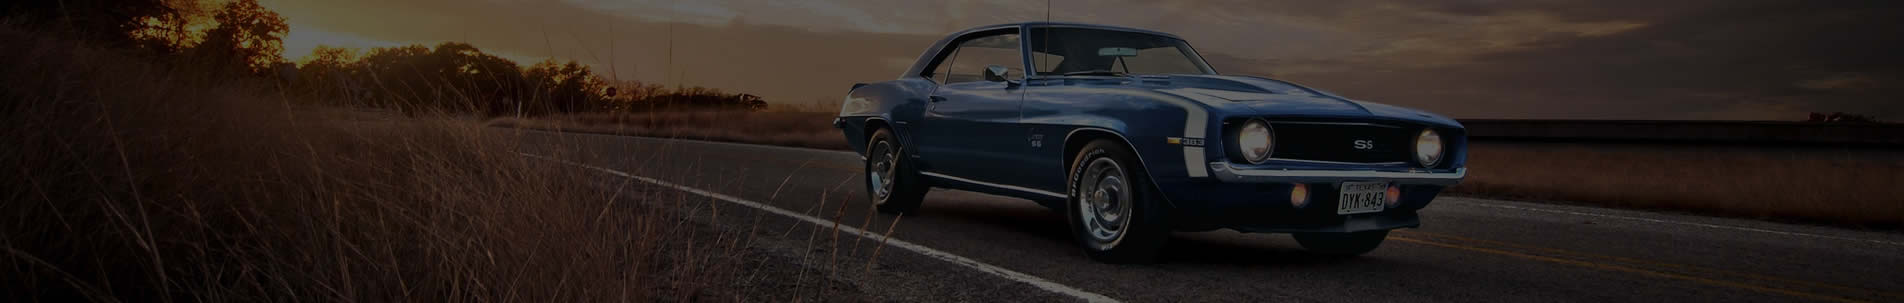 Classic Car Dealer Maine | We Buy and Sell Muscle Cars